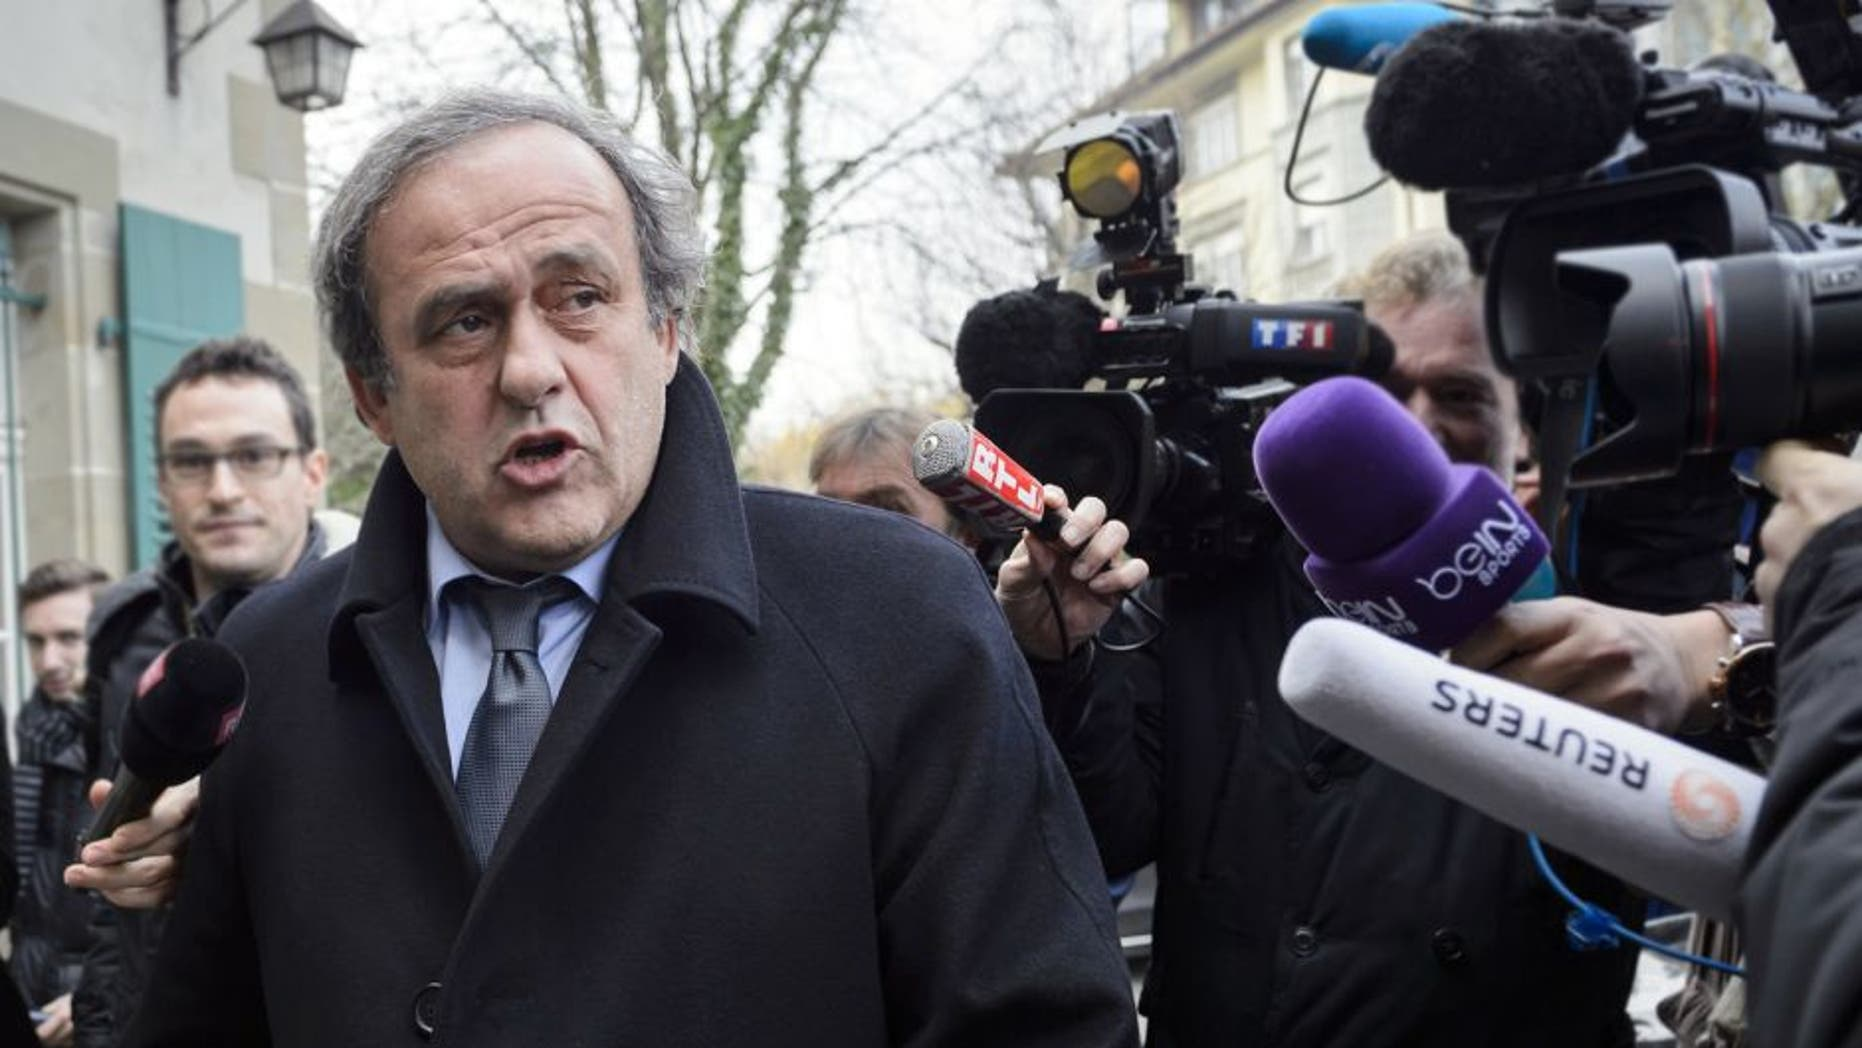 UEFA president and FIFA vice president Michel Platini speaks to the press as he arrives at the Court of Arbitration for Sport (CAS) to appeal against a 90-day suspension in Lausanne on December 8, 2015. The appeal is part of a new campaign by Platini to get back into the election for a new FIFA leader on February 26. / AFP / FABRICE COFFRINI (Photo credit should read FABRICE COFFRINI/AFP/Getty Images)